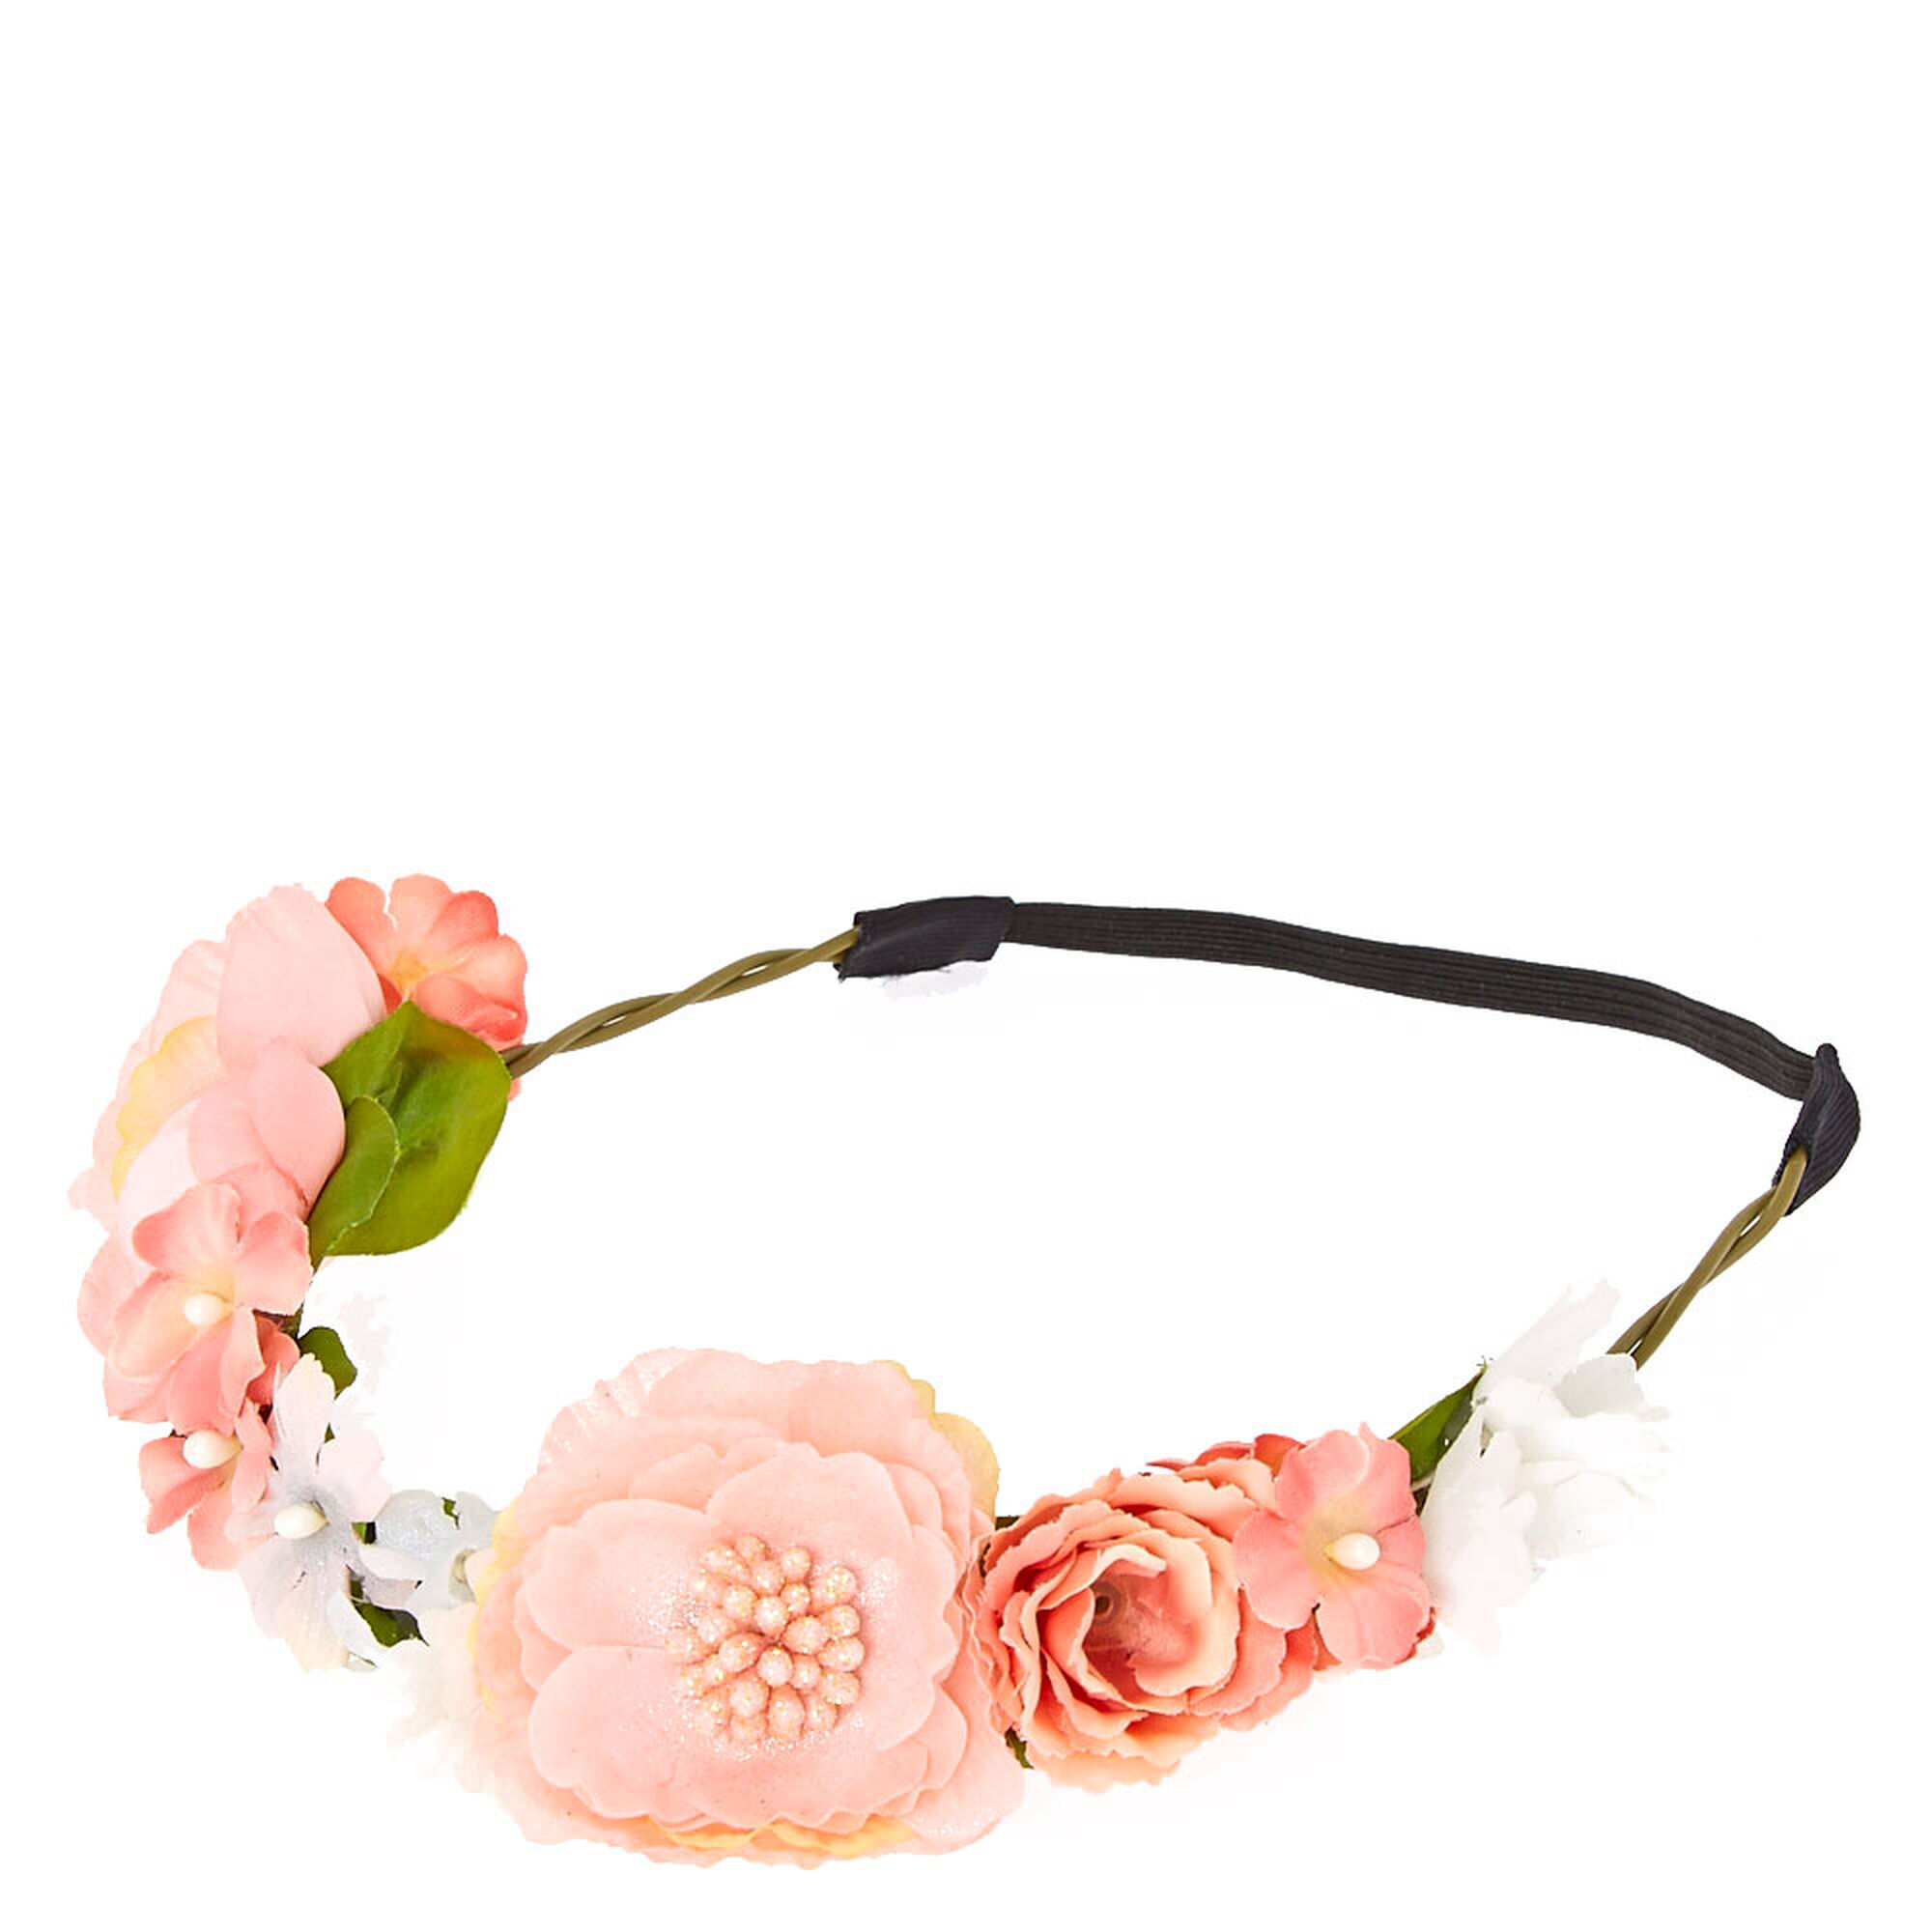 Shimmery pink flower hair garland claires shimmery pink flower hair garland mightylinksfo